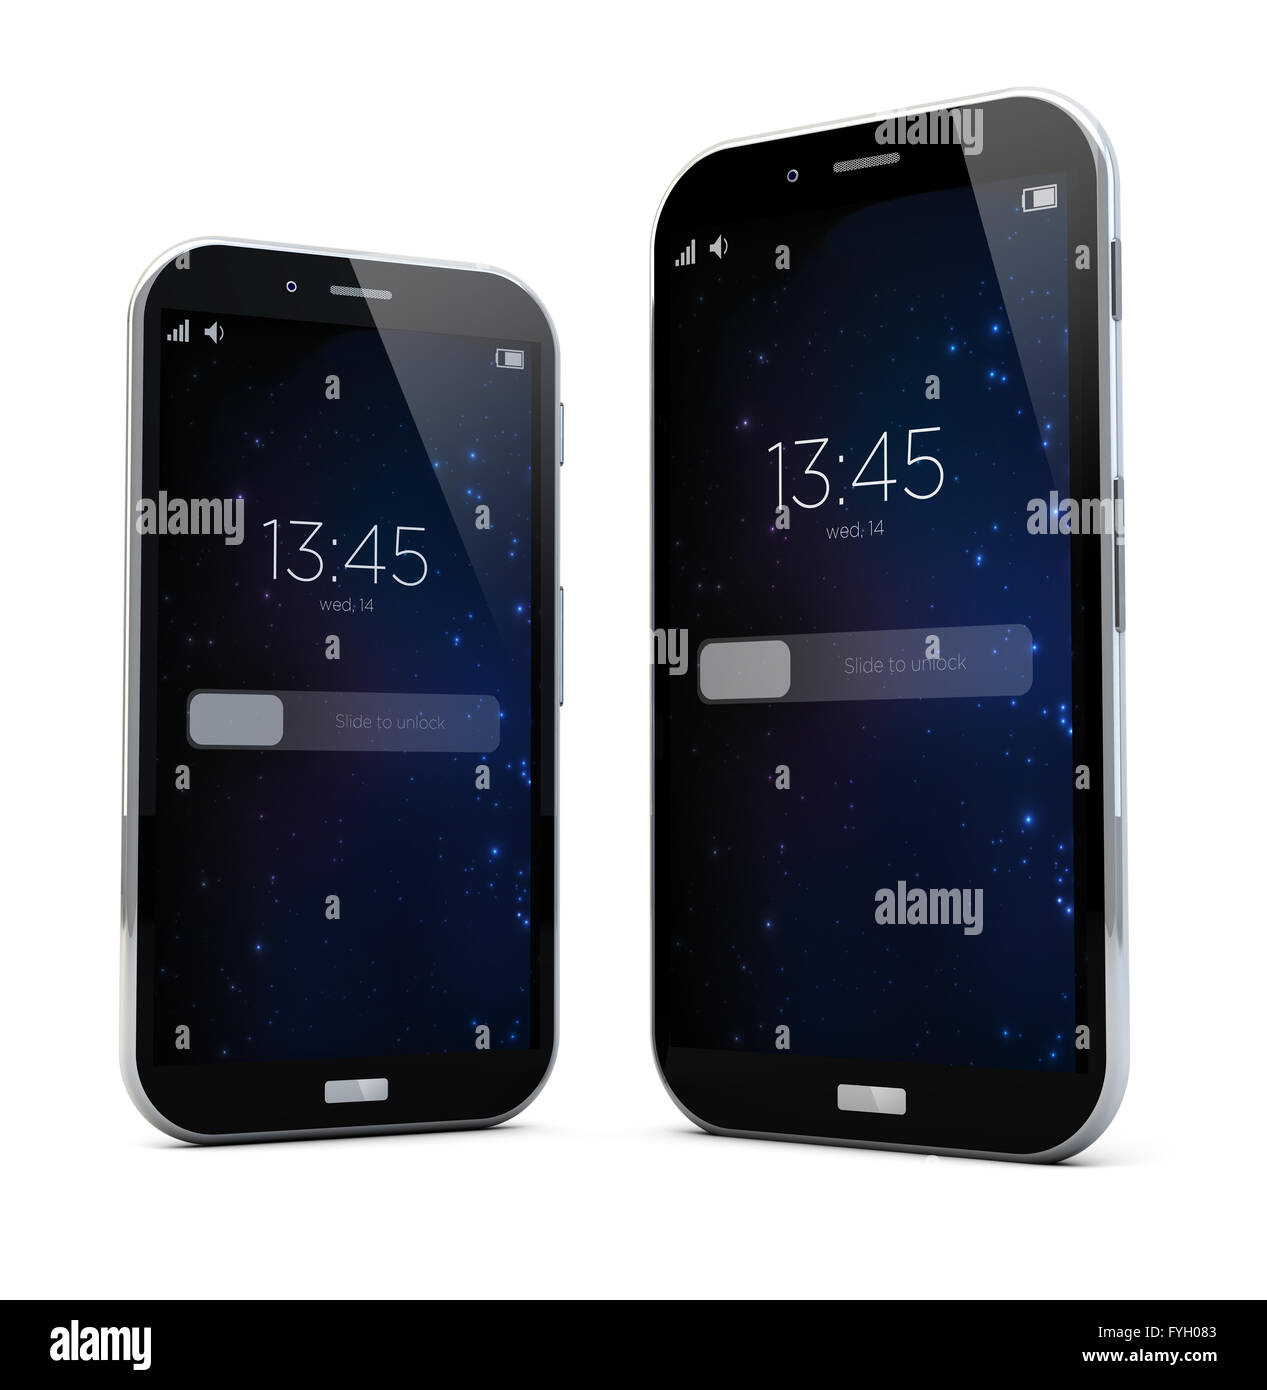 render of two sizes smartphones - Stock Image